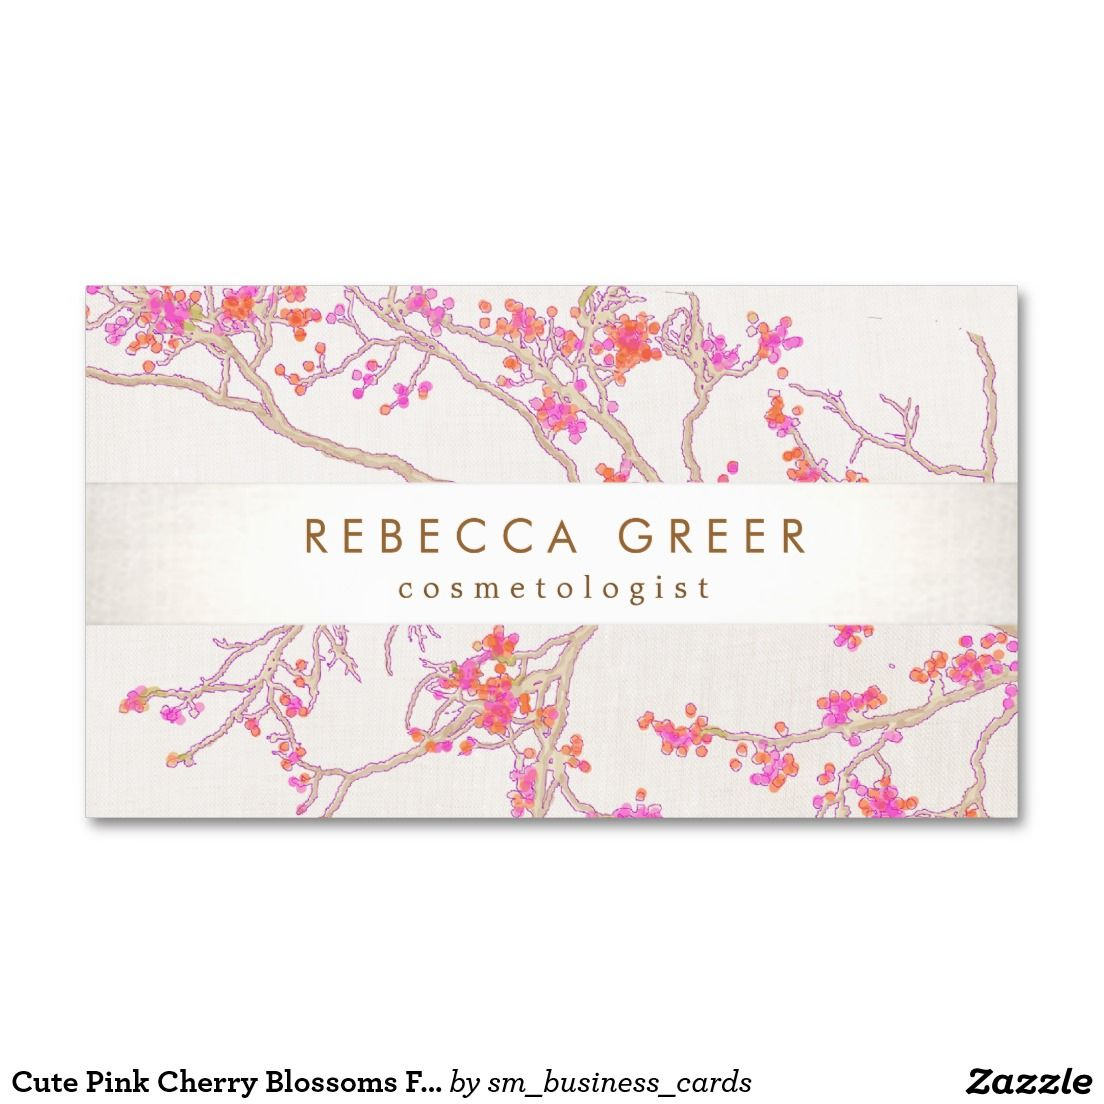 Cute Pink Cherry Blossoms Floral Beauty Business Card | Pinterest ...